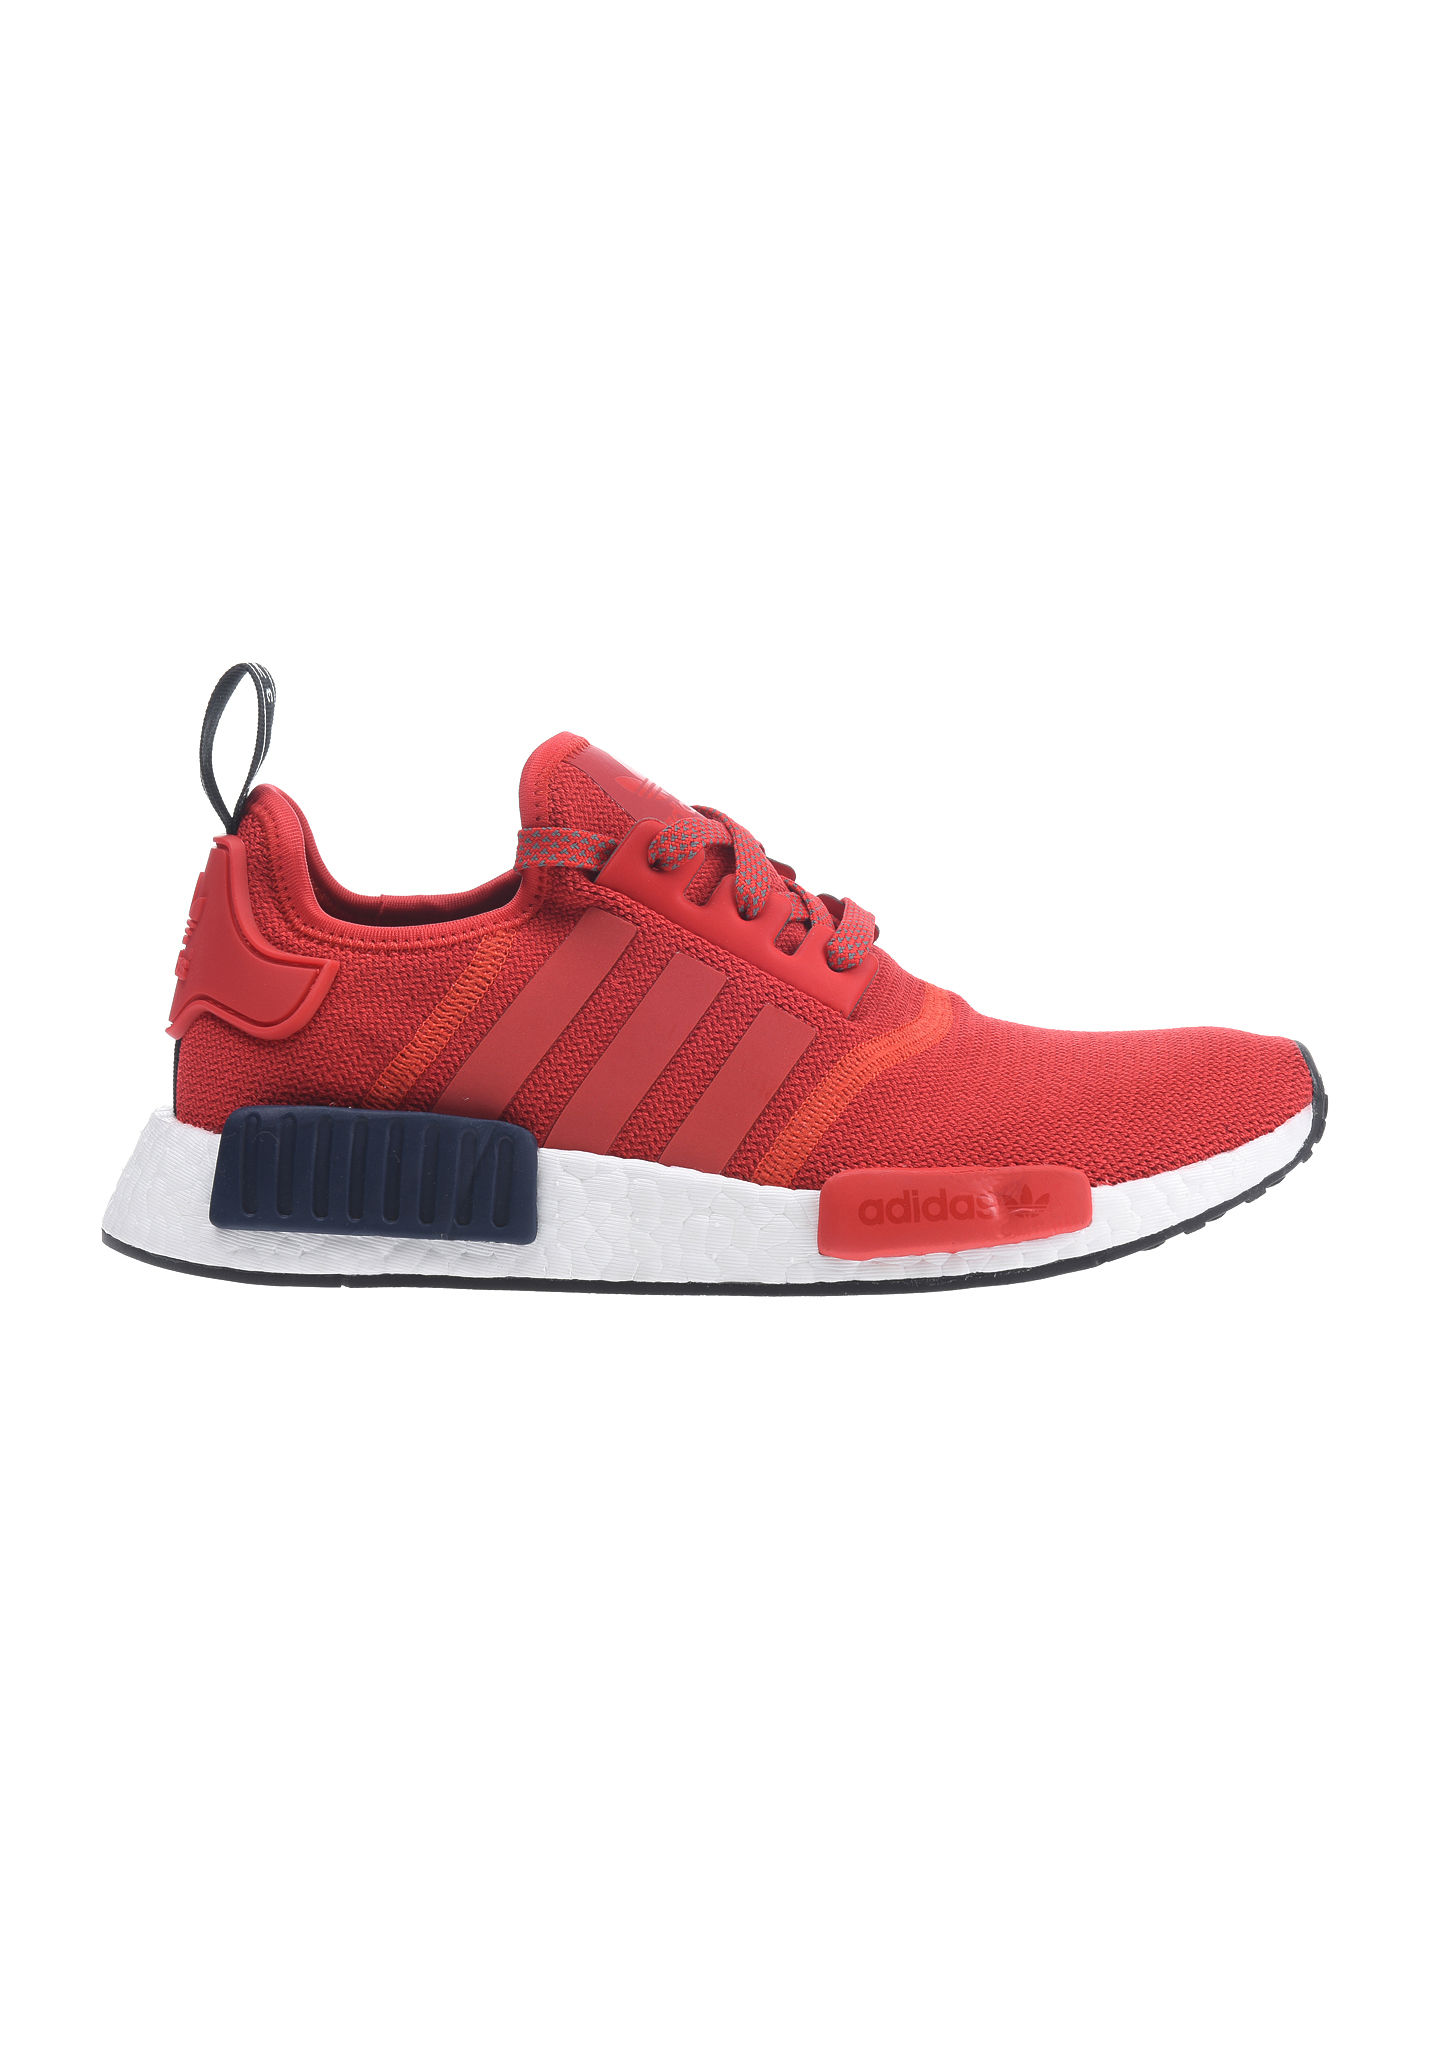 adidas nmd r1 damen bordeaux. Black Bedroom Furniture Sets. Home Design Ideas